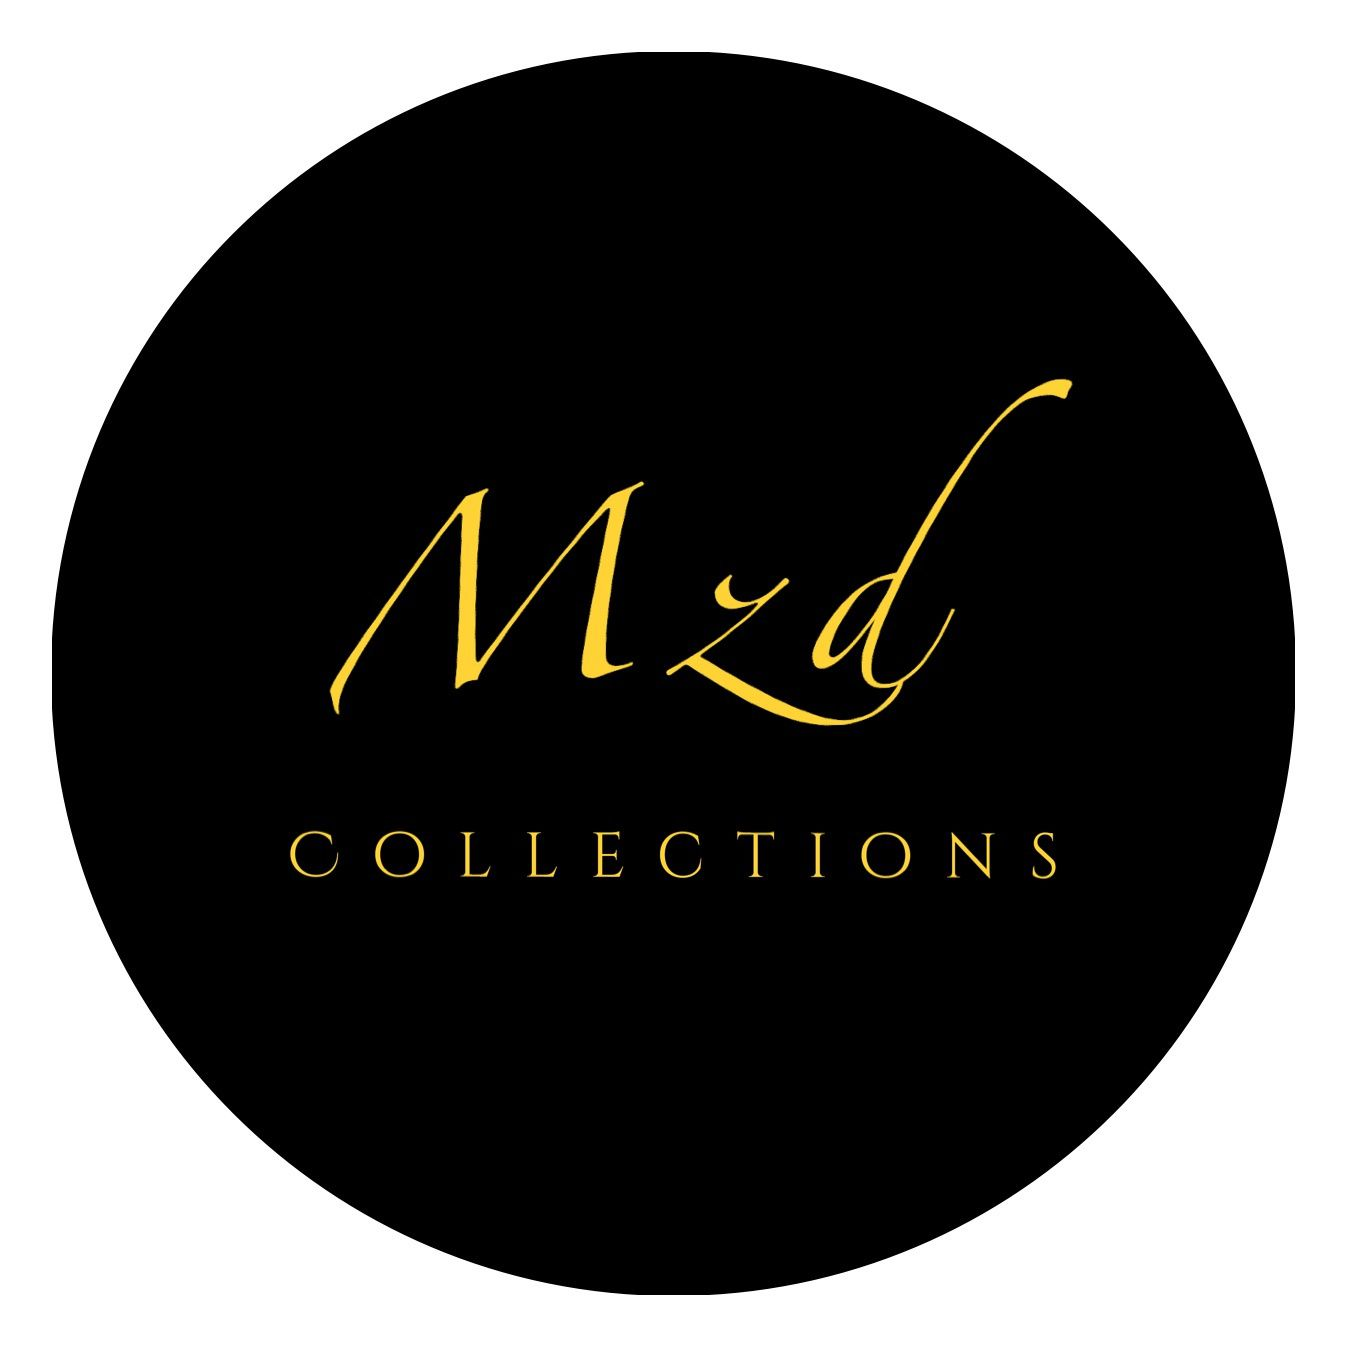 mzd.collections